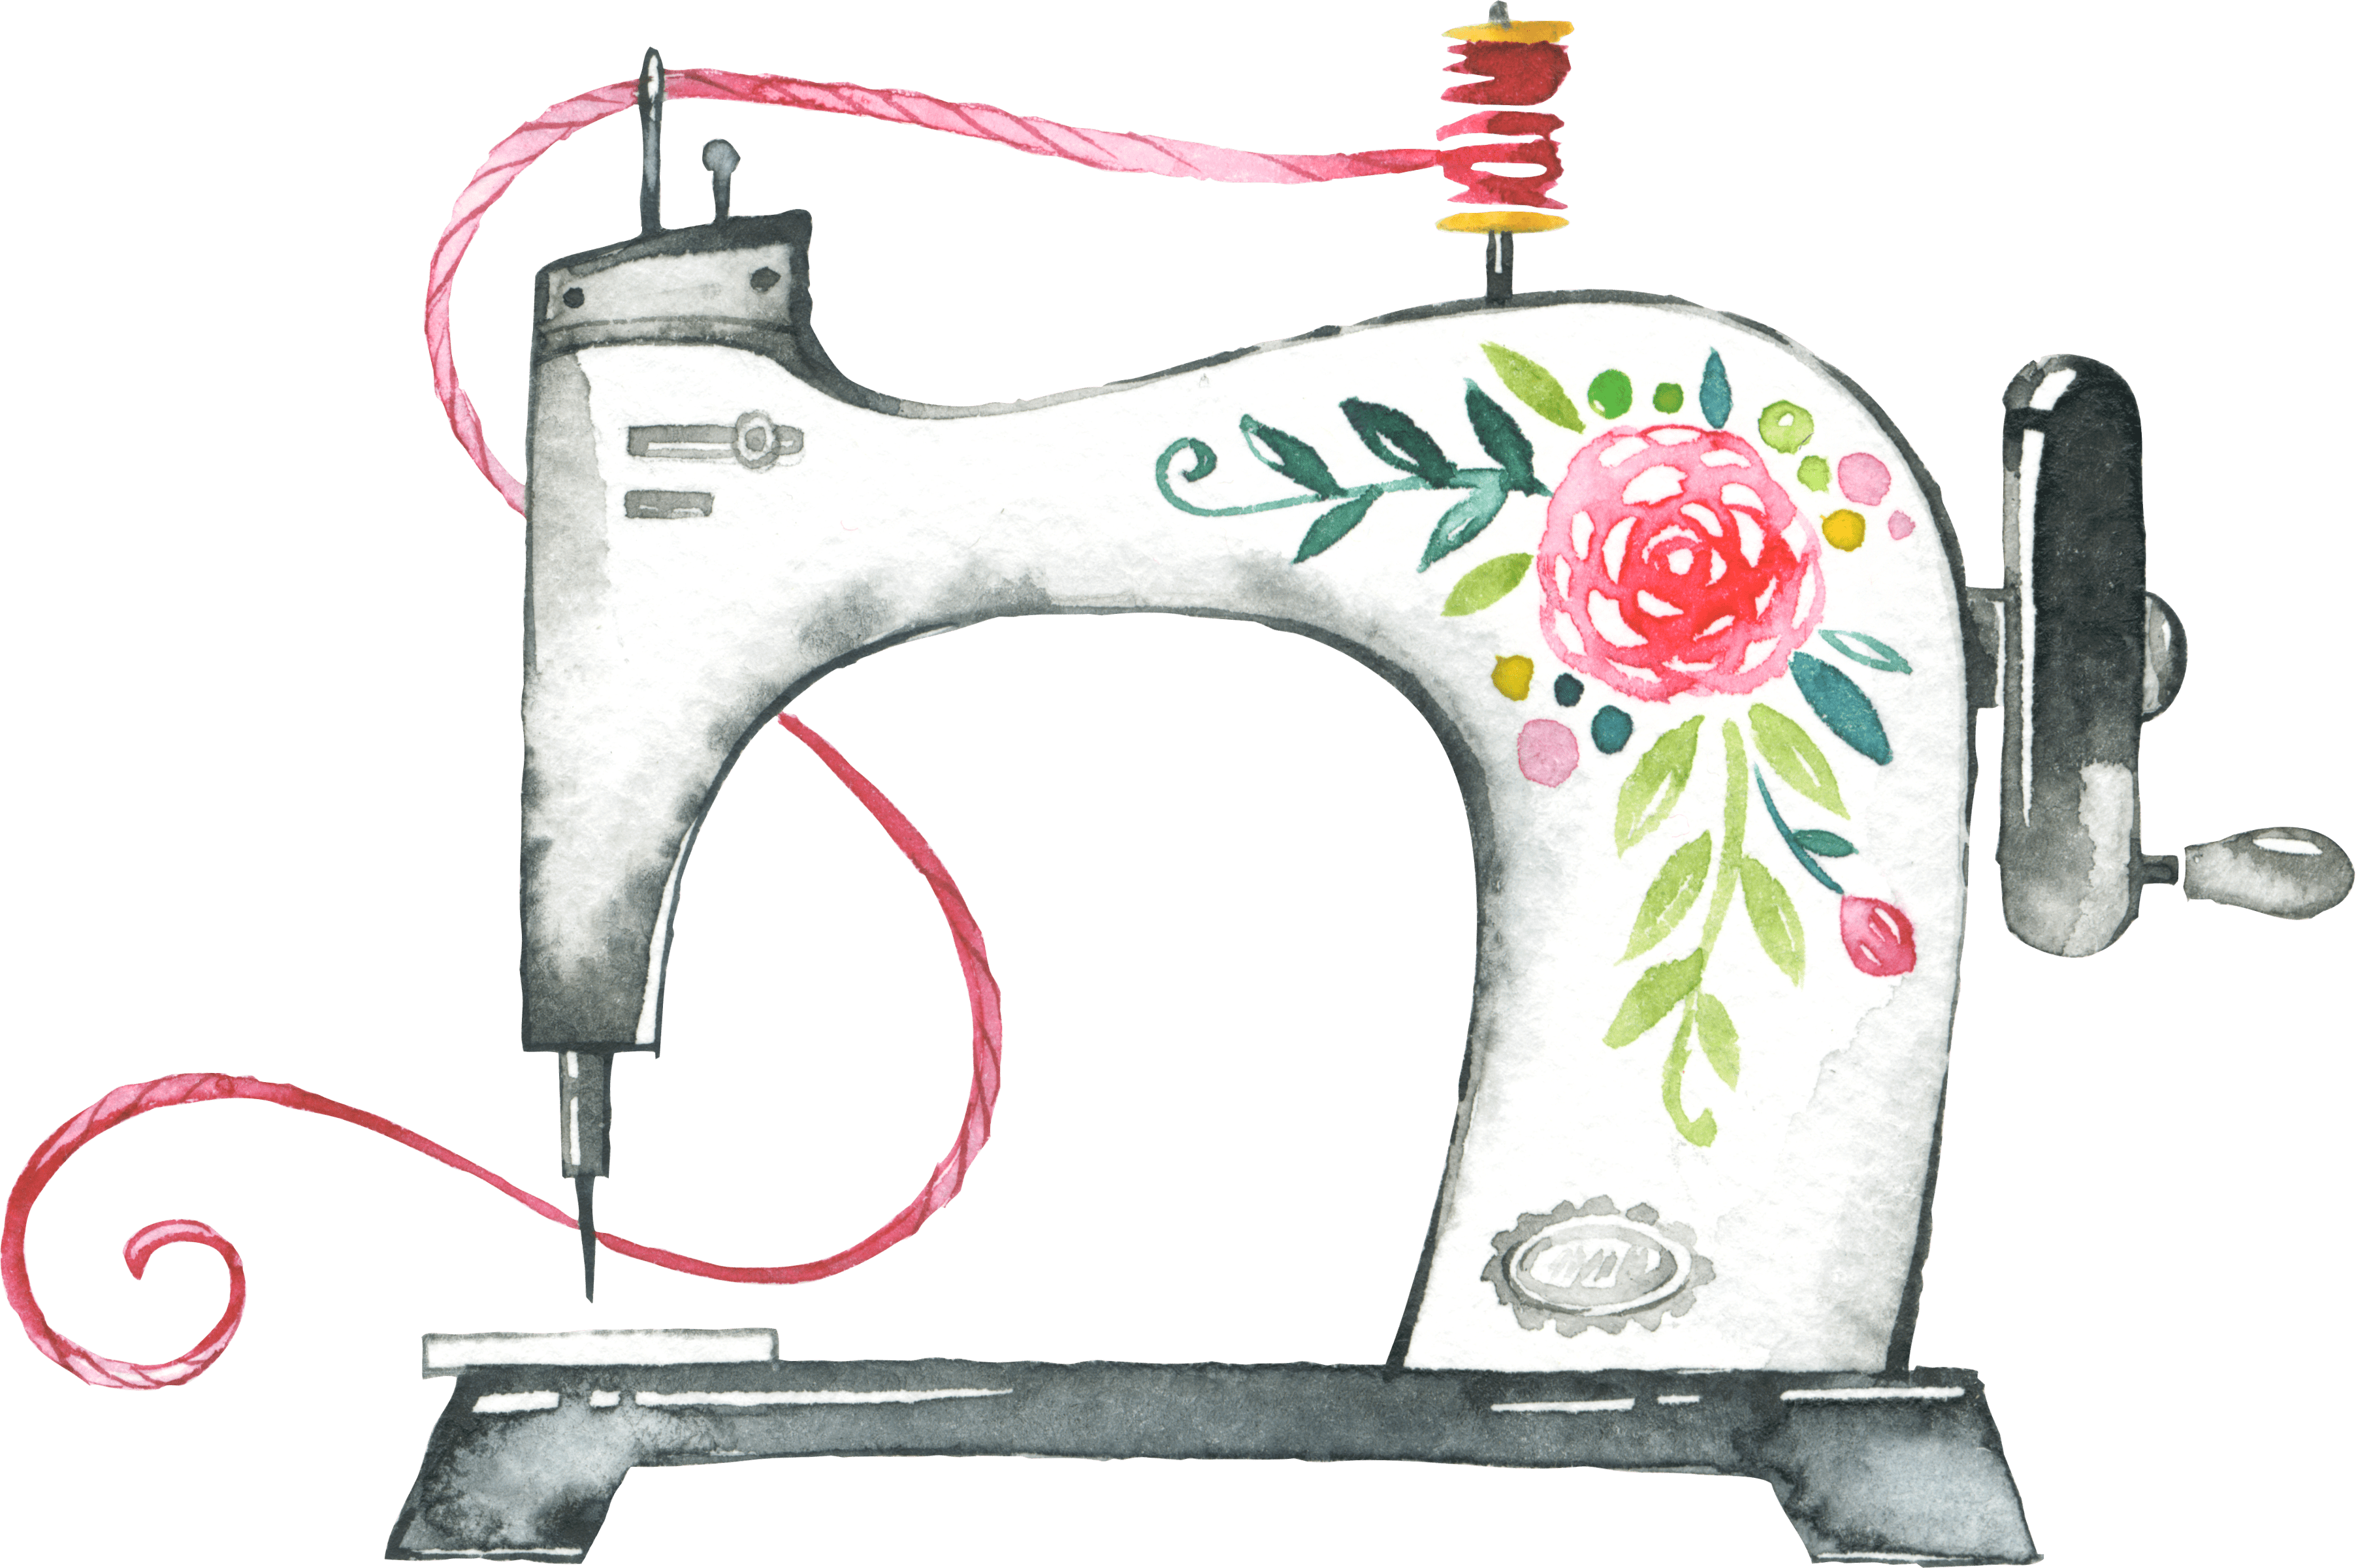 Shears clipart sewing accessory. Project patternmaking tools of